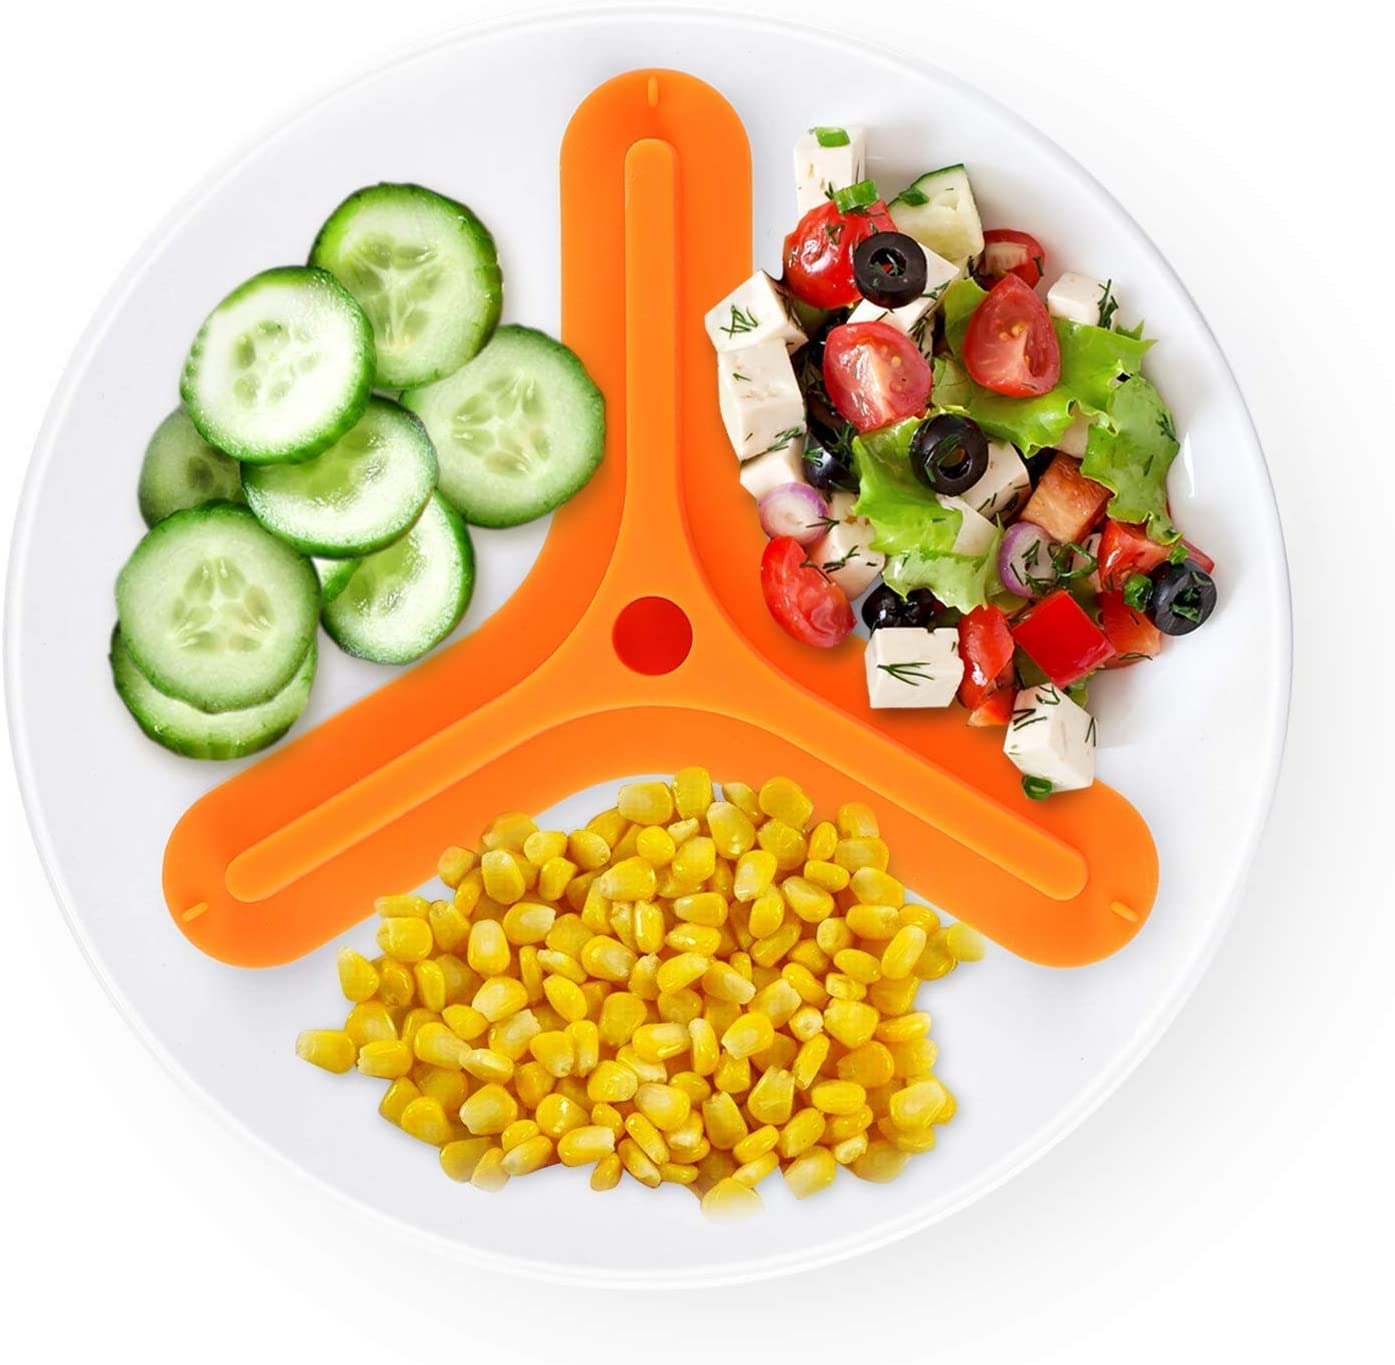 BPA Free Silicone Food Plate Divider 3 divided food plate separator Safe Food Silicone (Orange,Large)